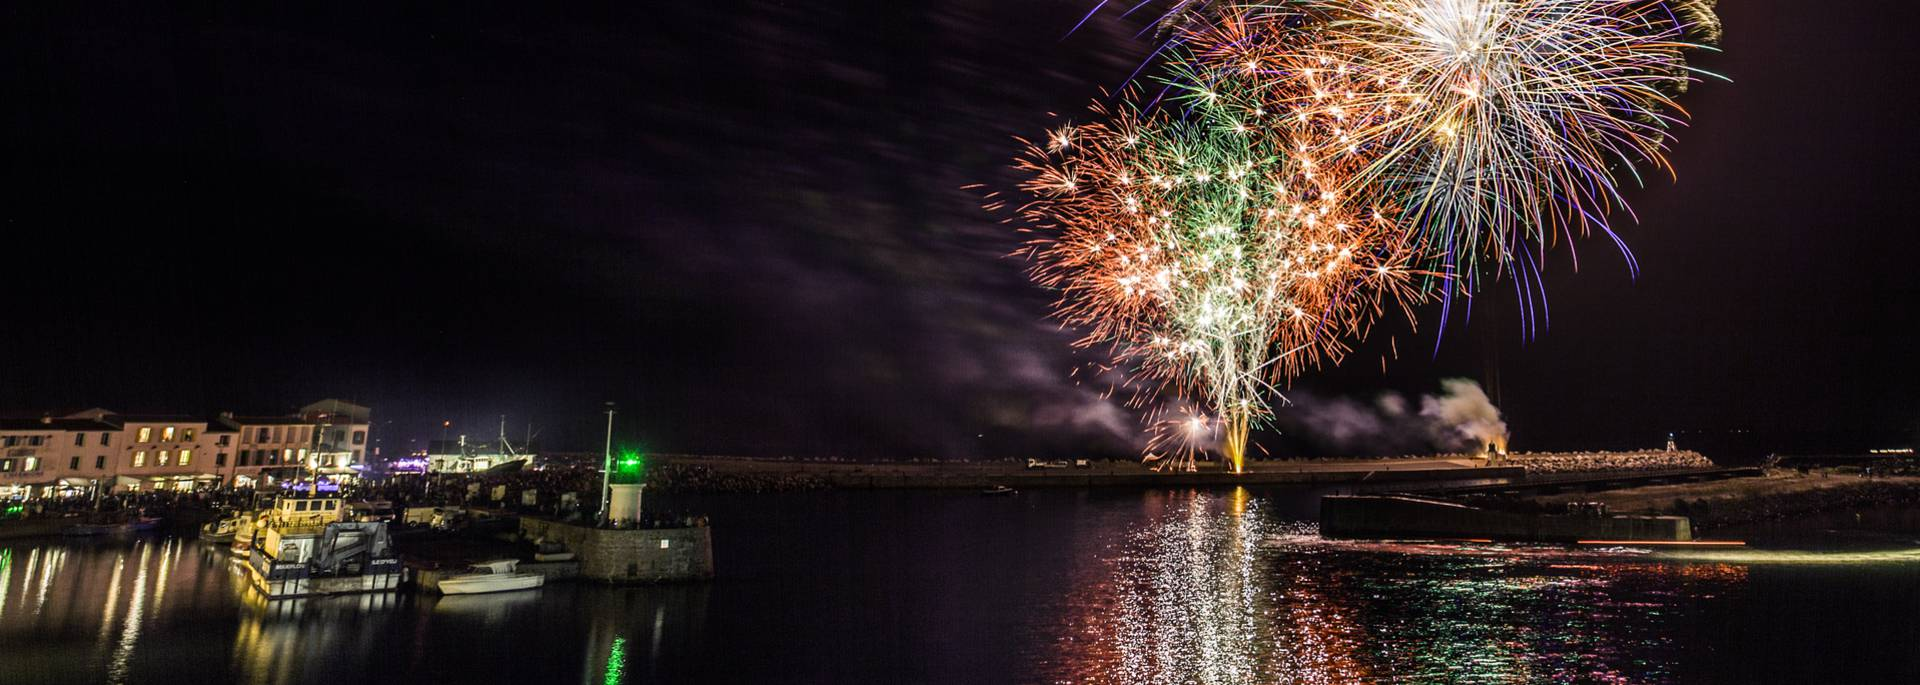 Fireworks, Port-Joinville, Ile d'Yeu